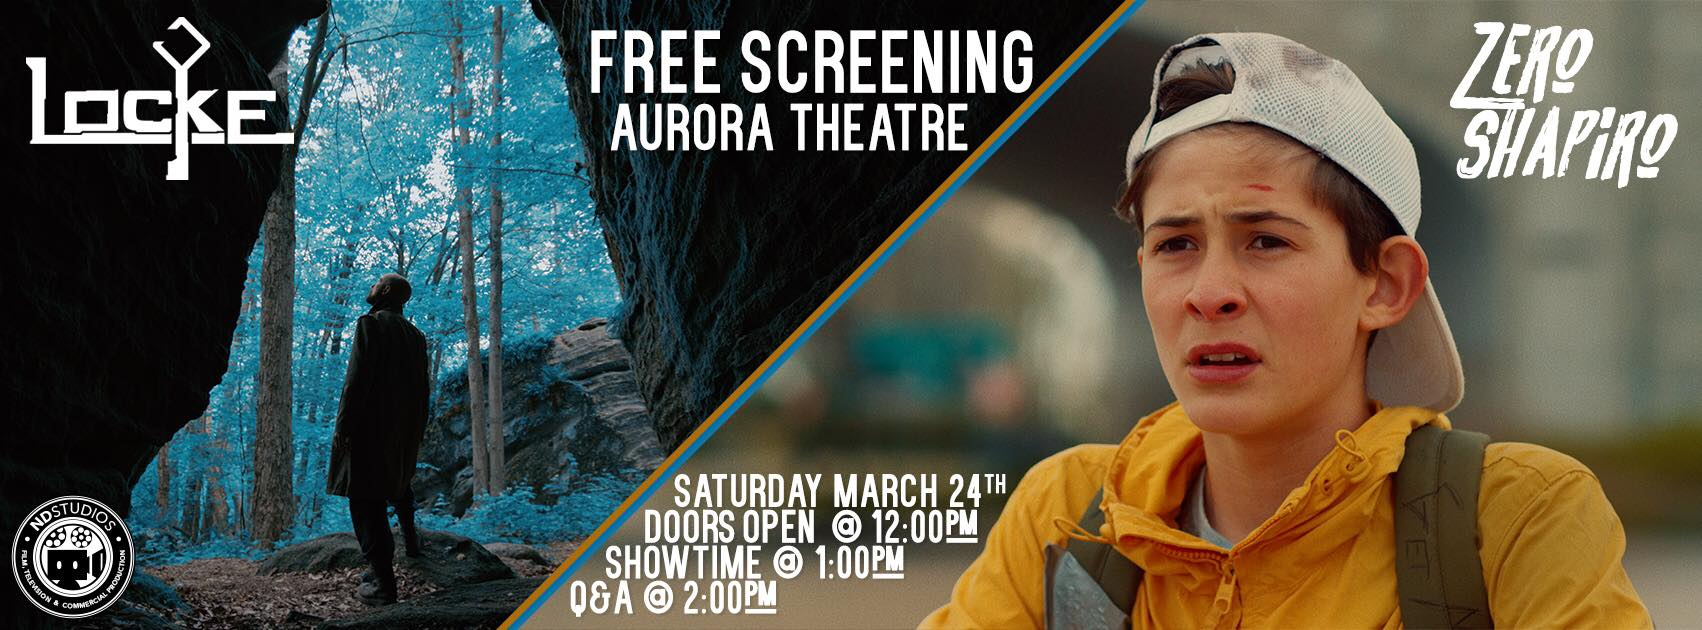 LOCKE and ZERO SCHAPIRO:  Free Screening March 24th in East Aurora